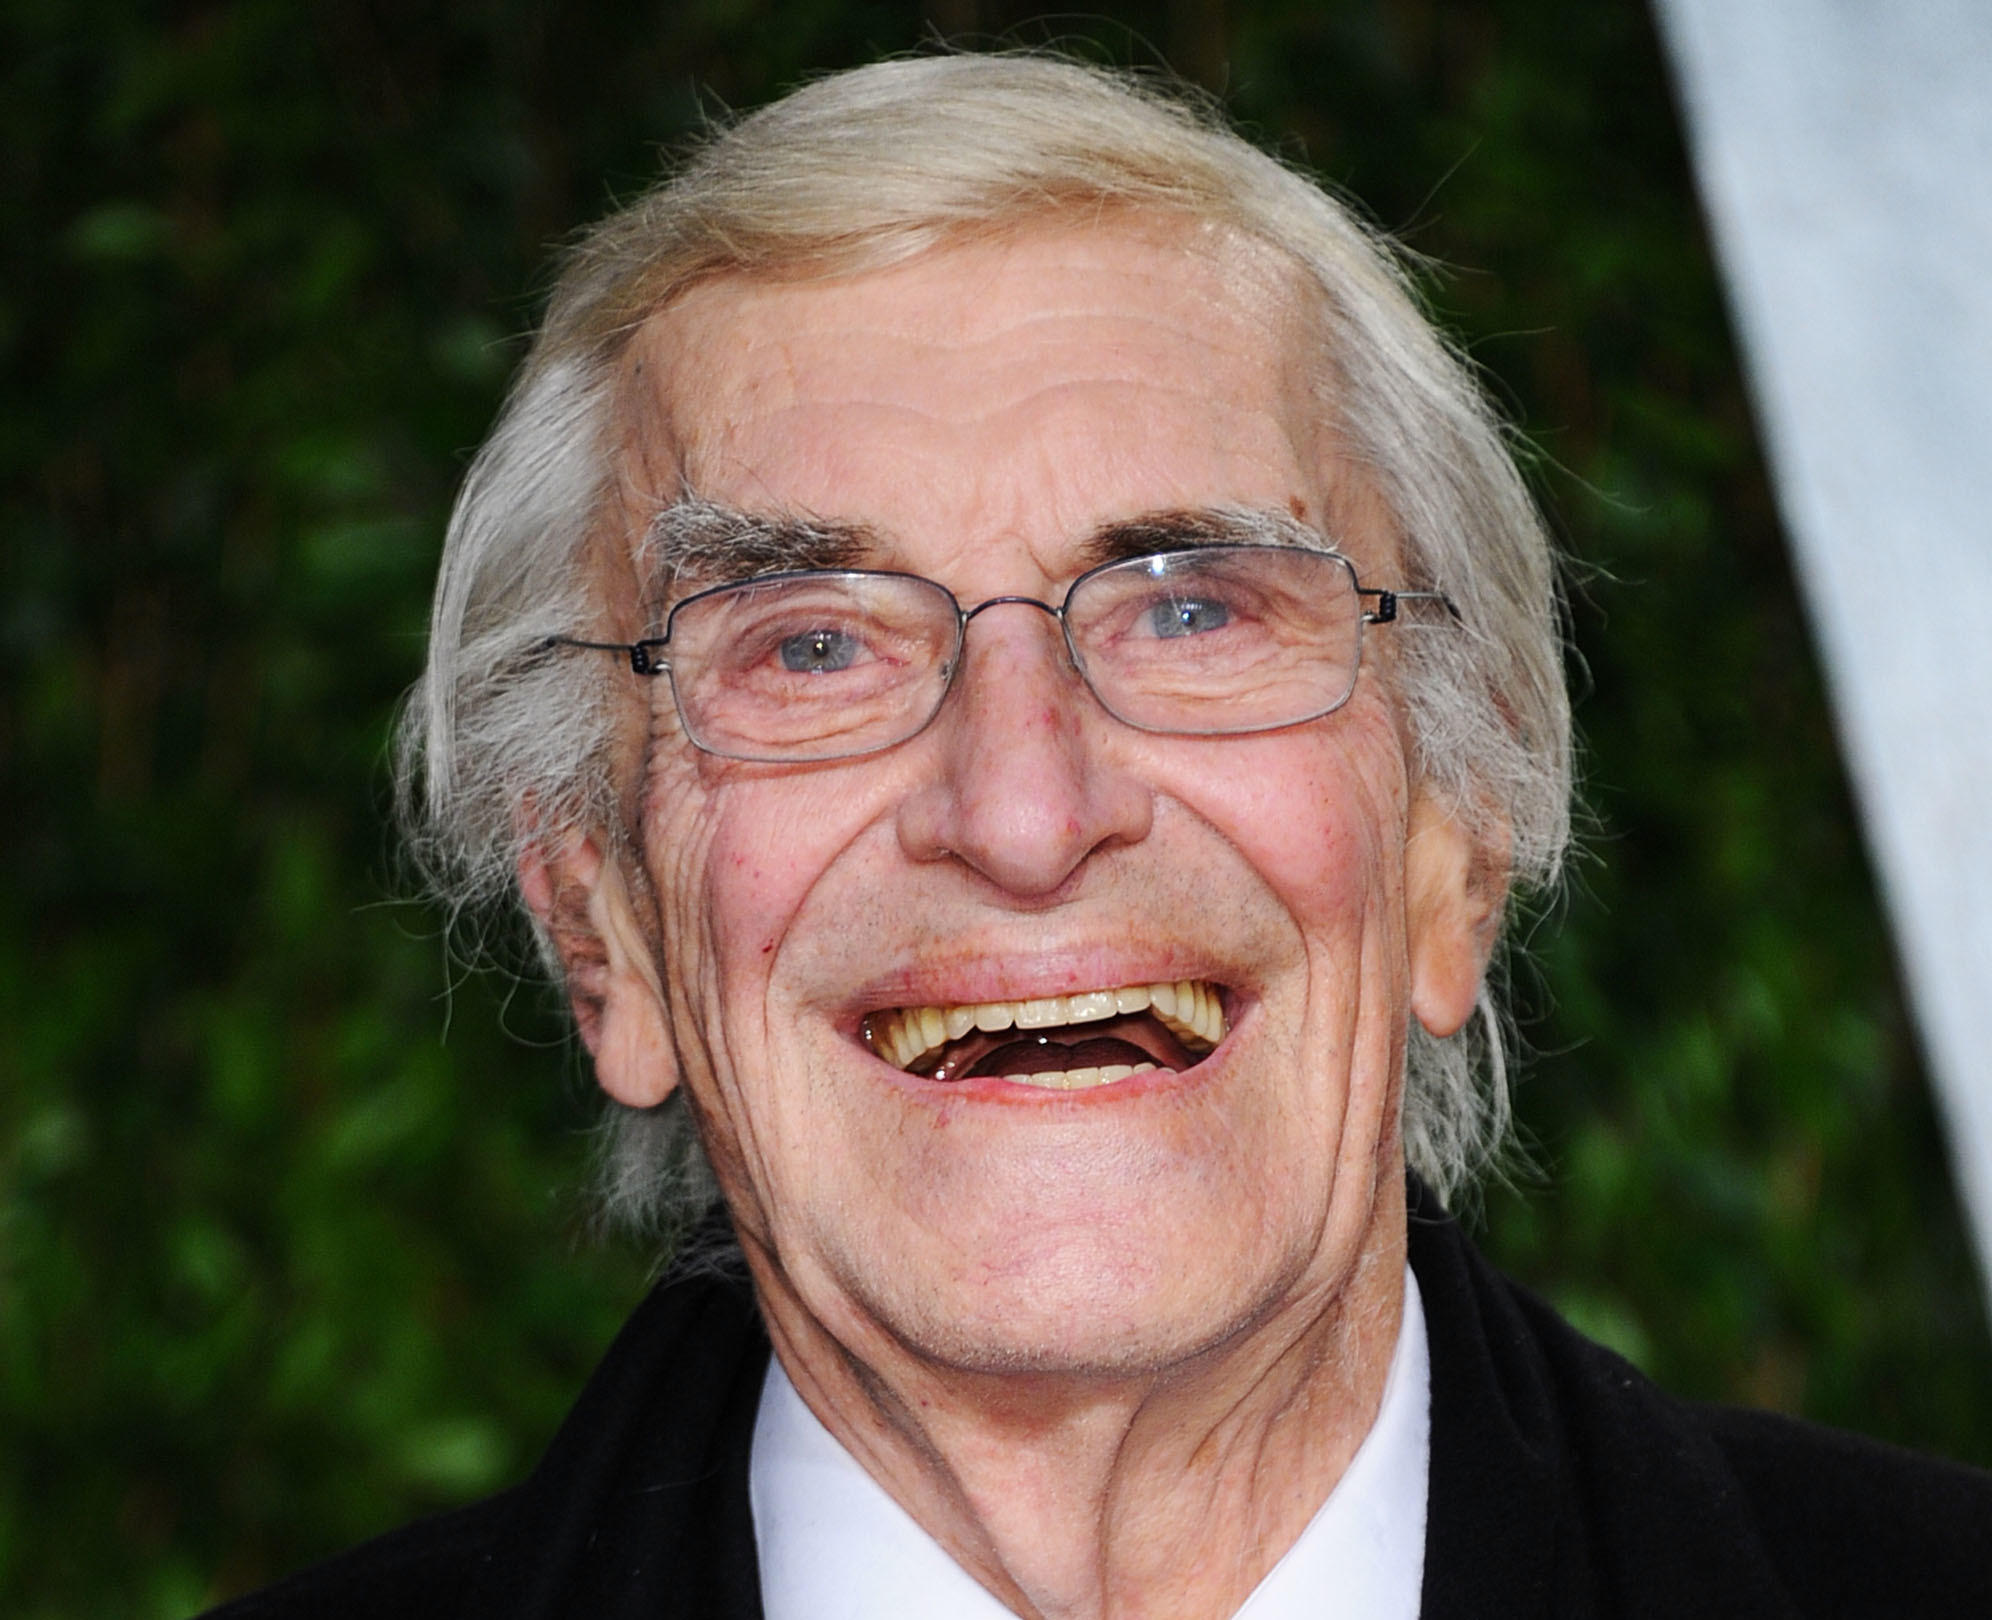 Academy Award Winning Actor Martin Landau known for his leading roles in North By Northwest and the 1960s Mission Impossible TV series has died. He was 89